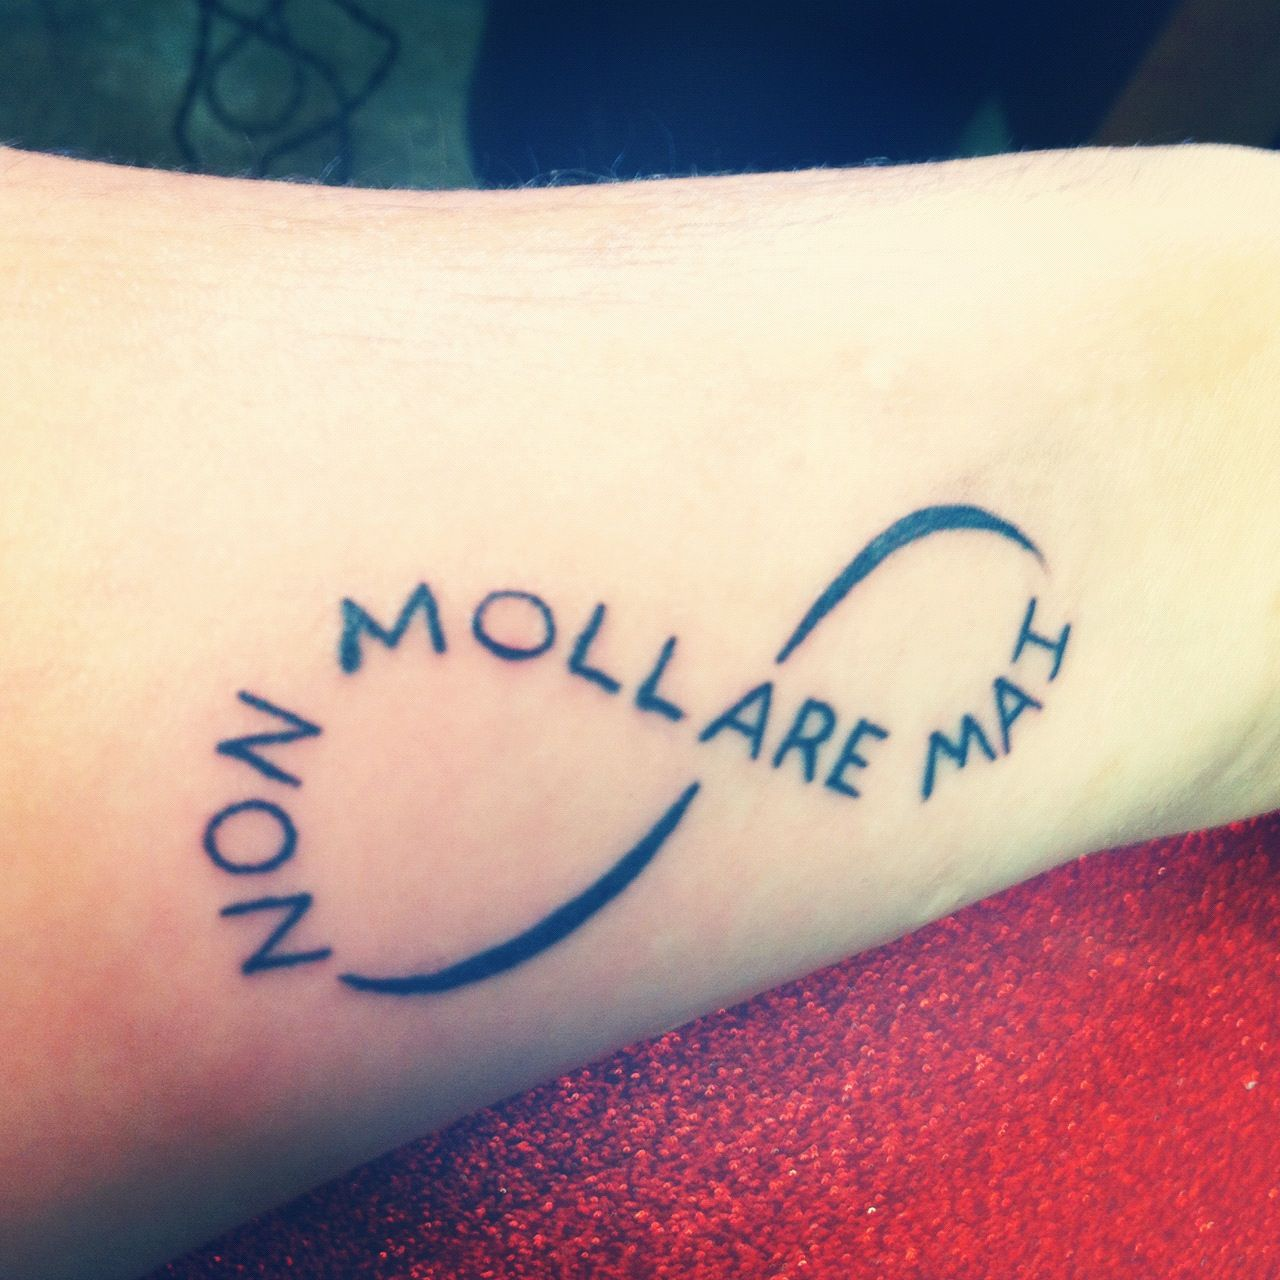 I Had This Tattooed On My Left Forearm Above My Wrist. NON